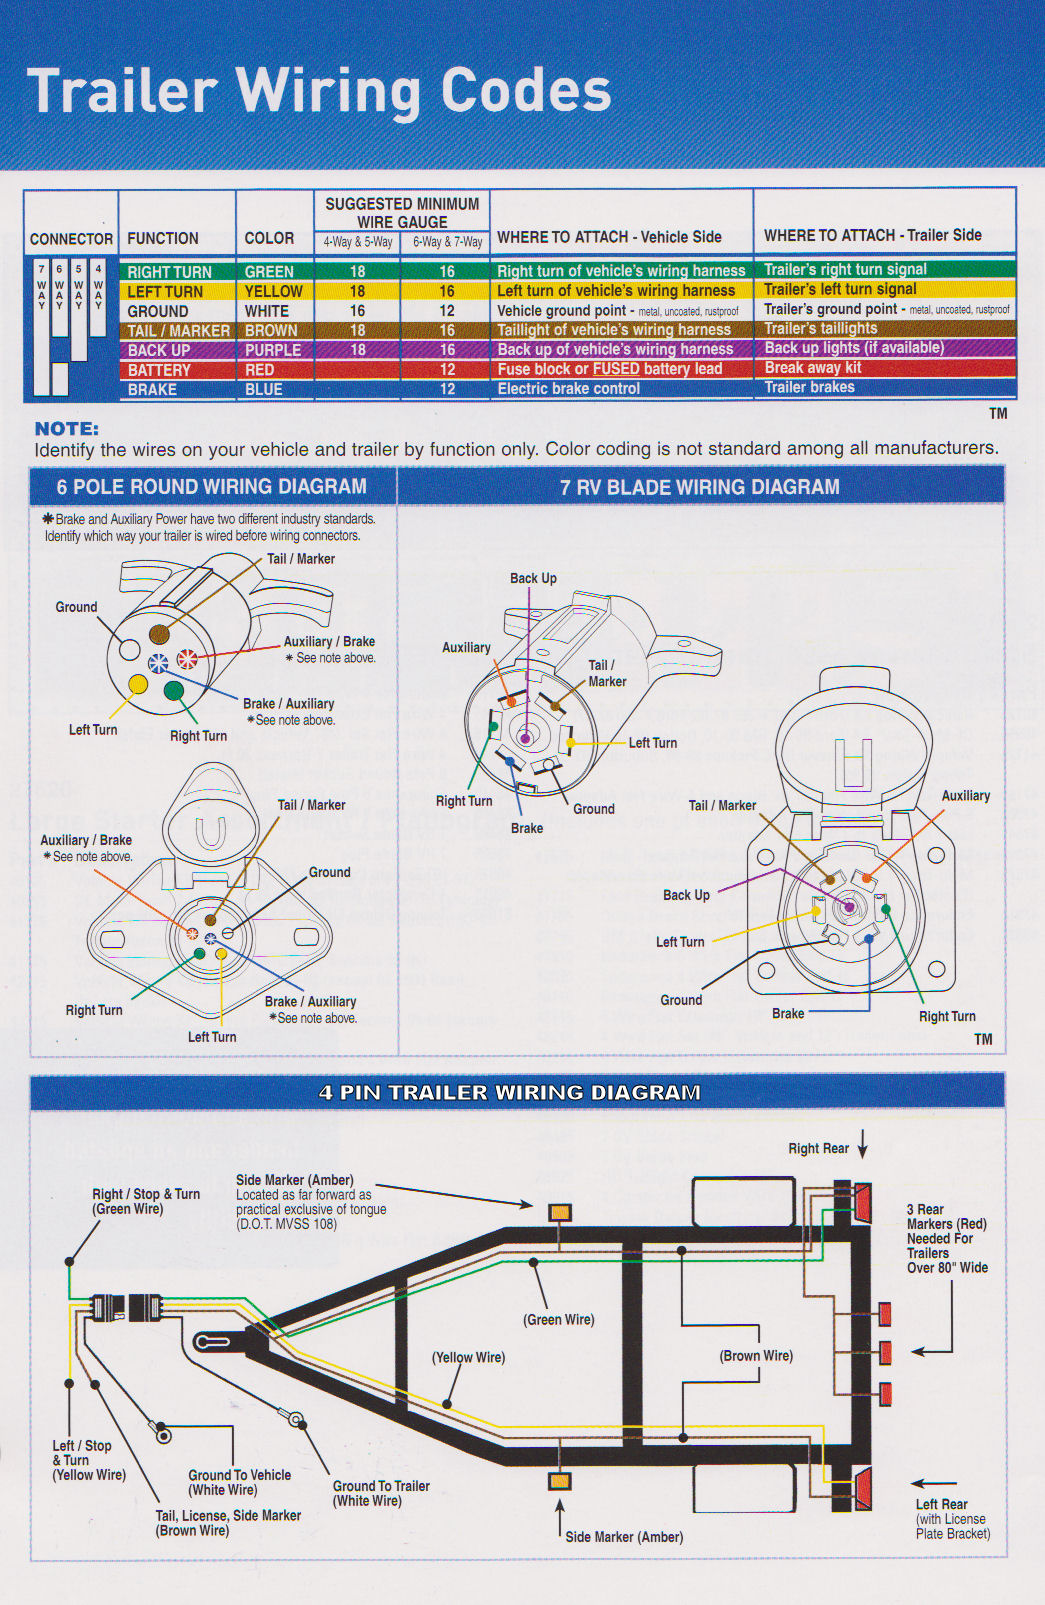 Trailer Wiring Diagram on 7 way rv plug diagram